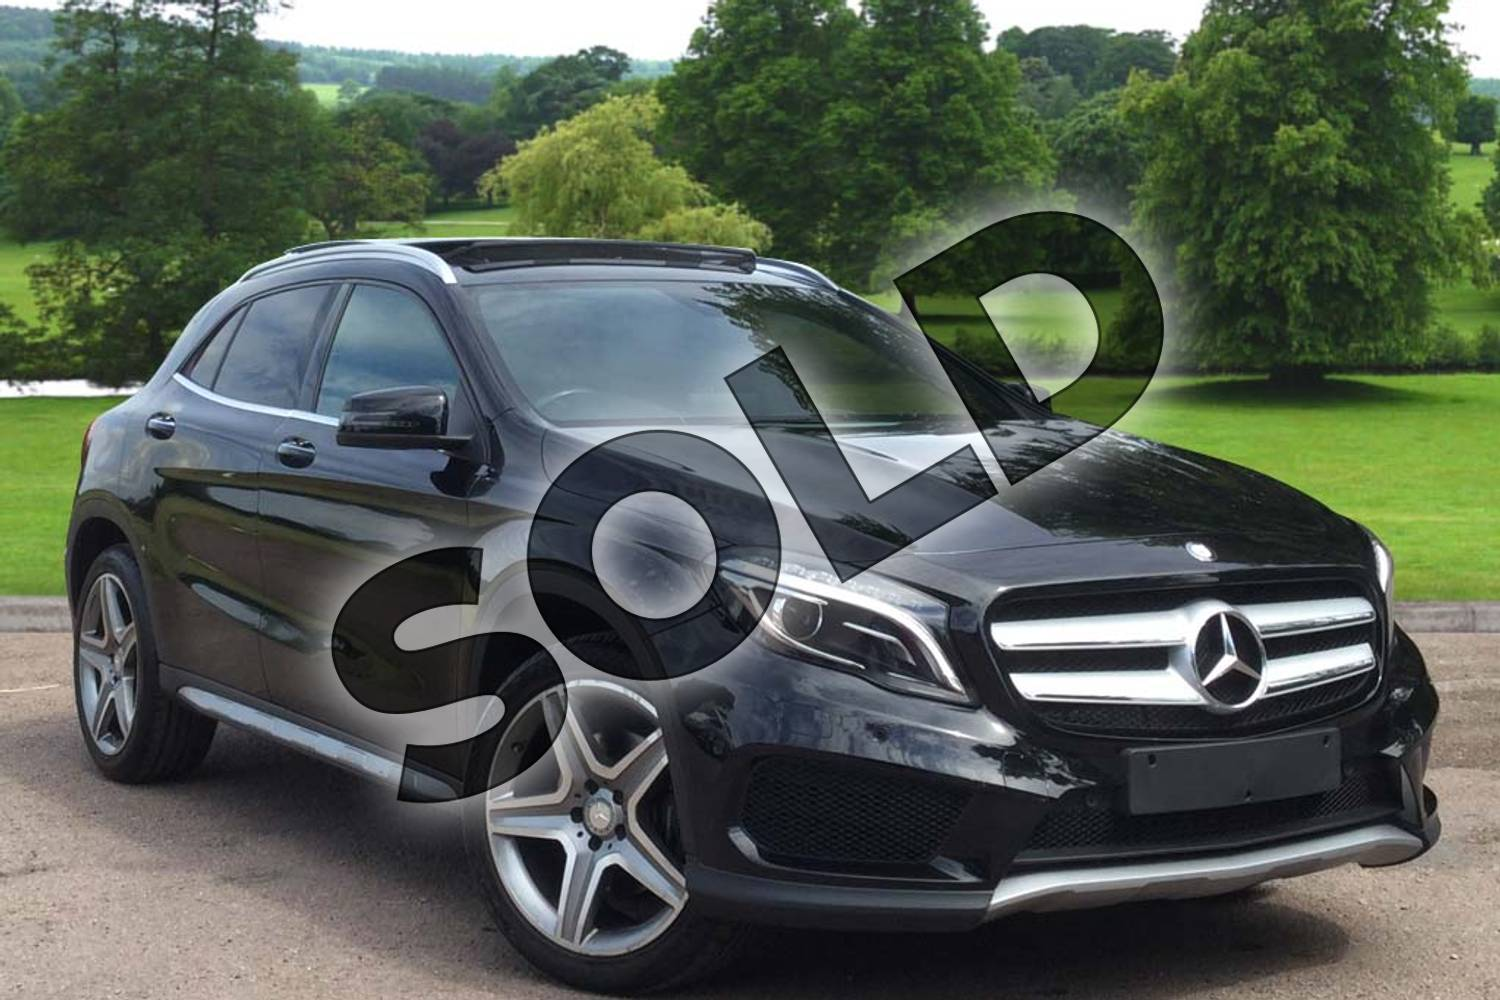 2016 Mercedes-Benz GLA Class Diesel Hatchback Diesel GLA 220d 4Matic AMG Line 5dr Auto in Cosmos Black Metallic at Mercedes-Benz of Grimsby